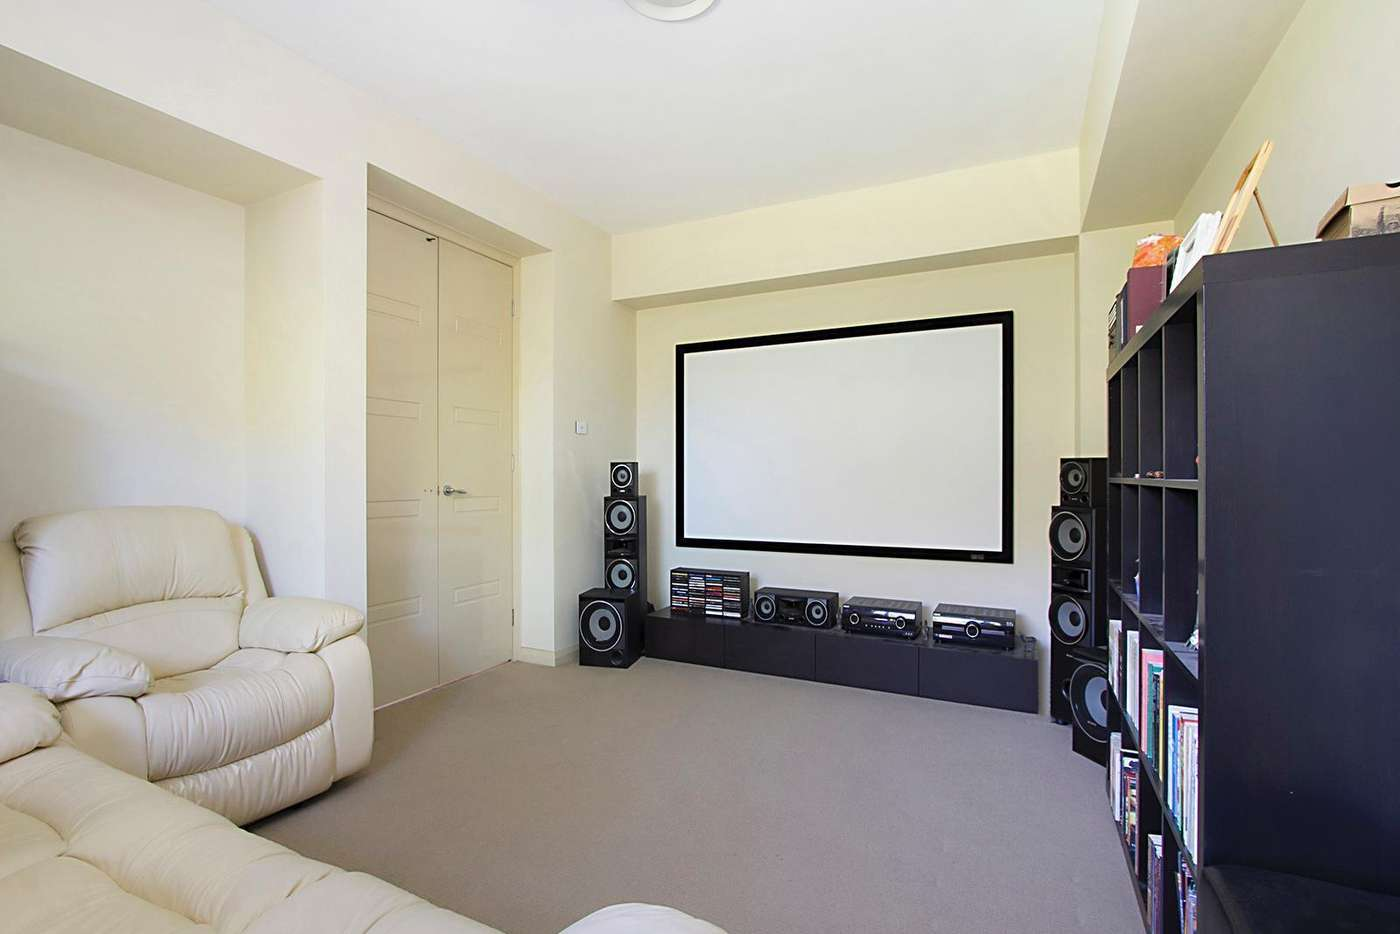 Sixth view of Homely house listing, 2 Iezza Place, Kellyville Ridge NSW 2155